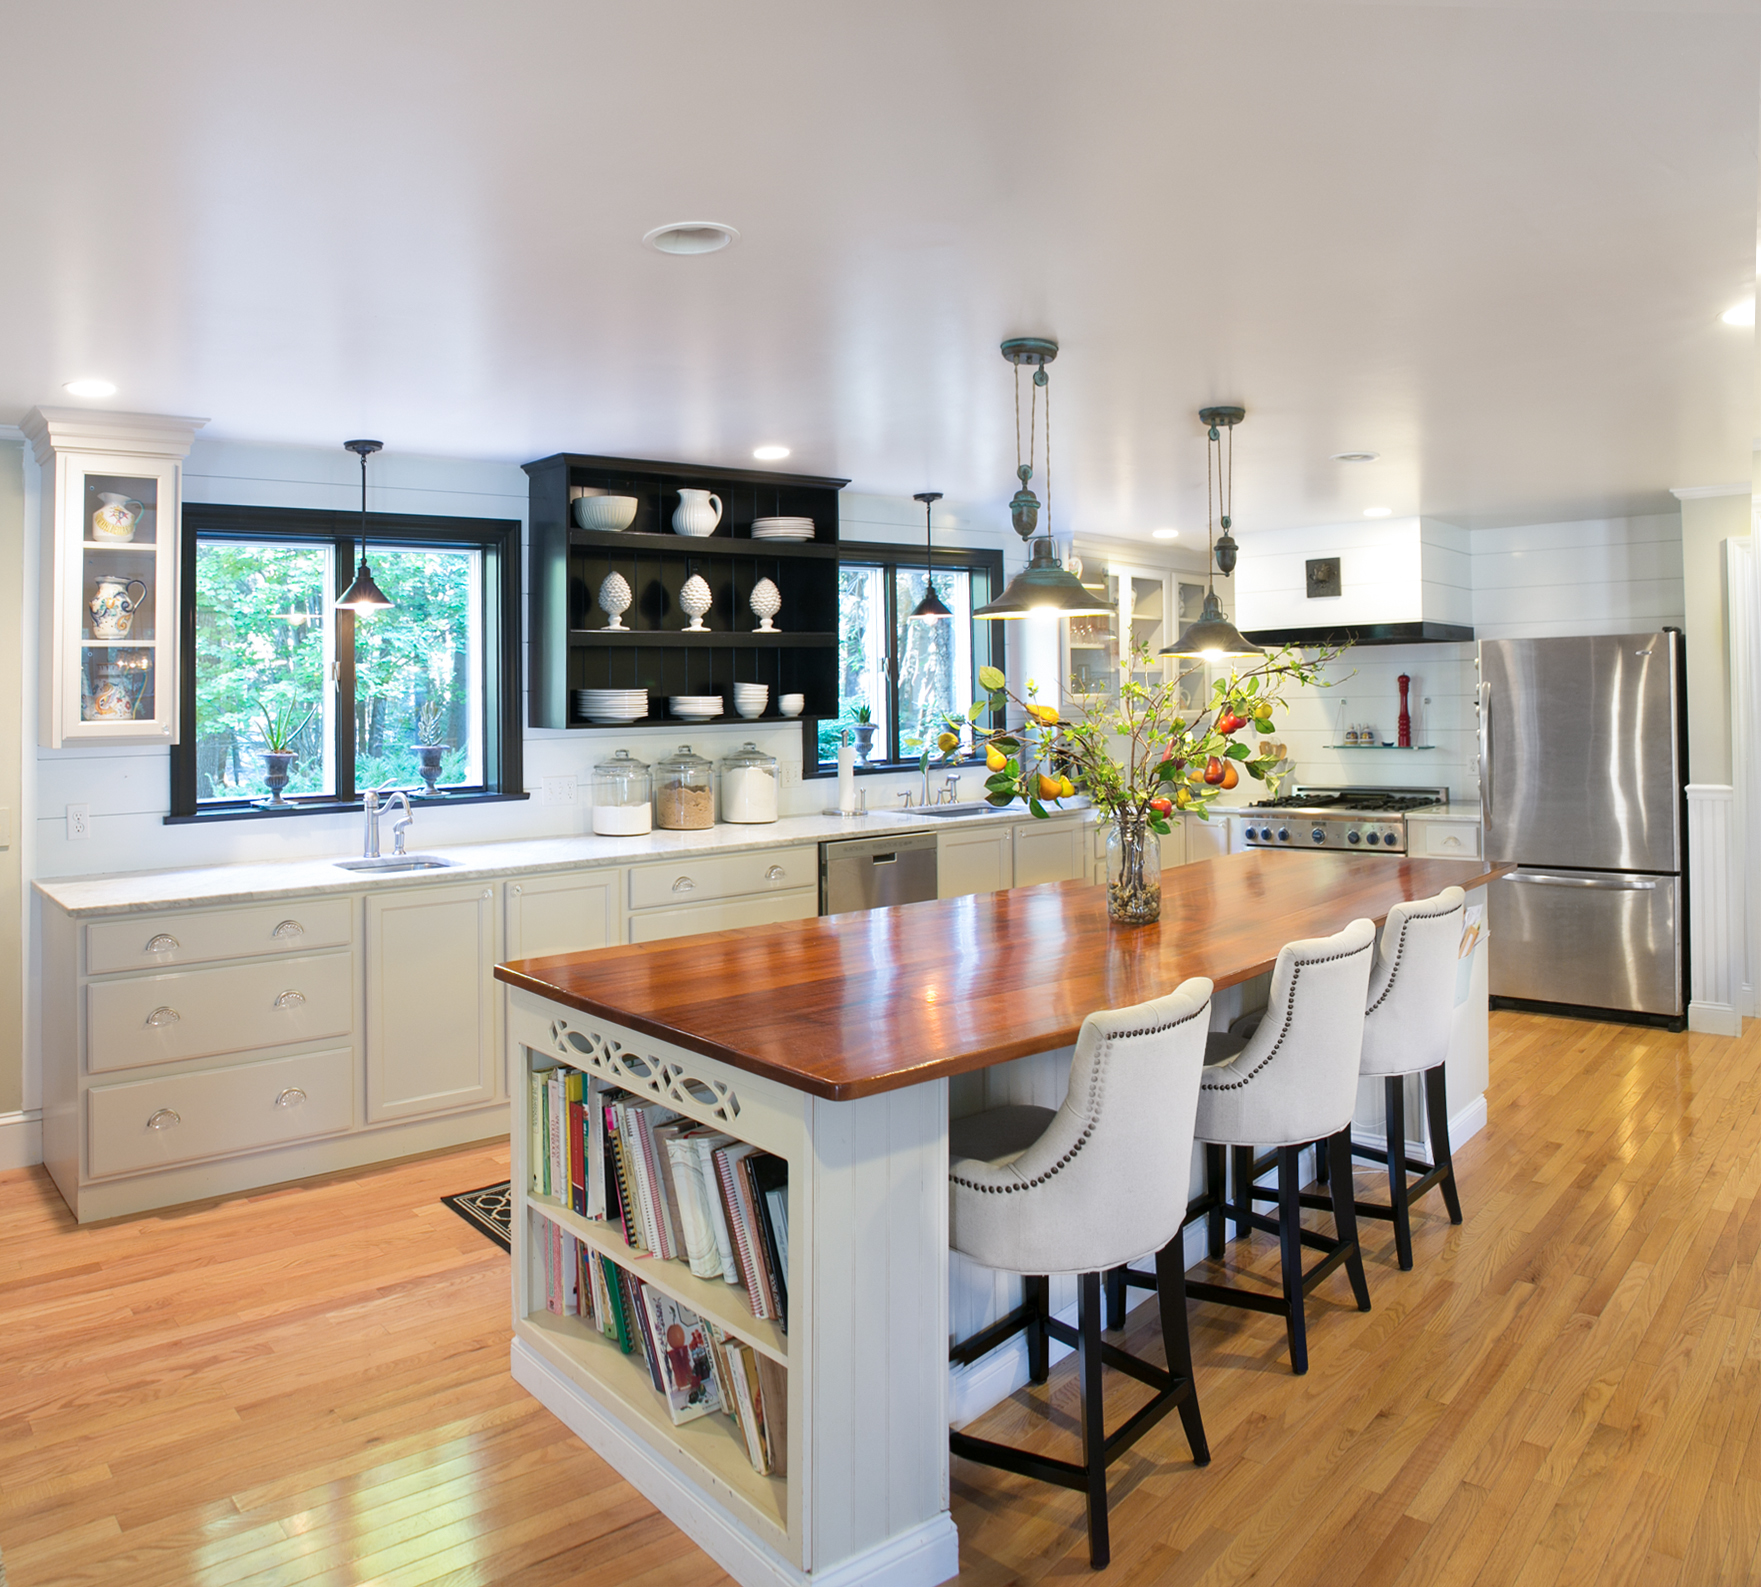 Need Inspiration For A Kitchen Renovation? Look At These